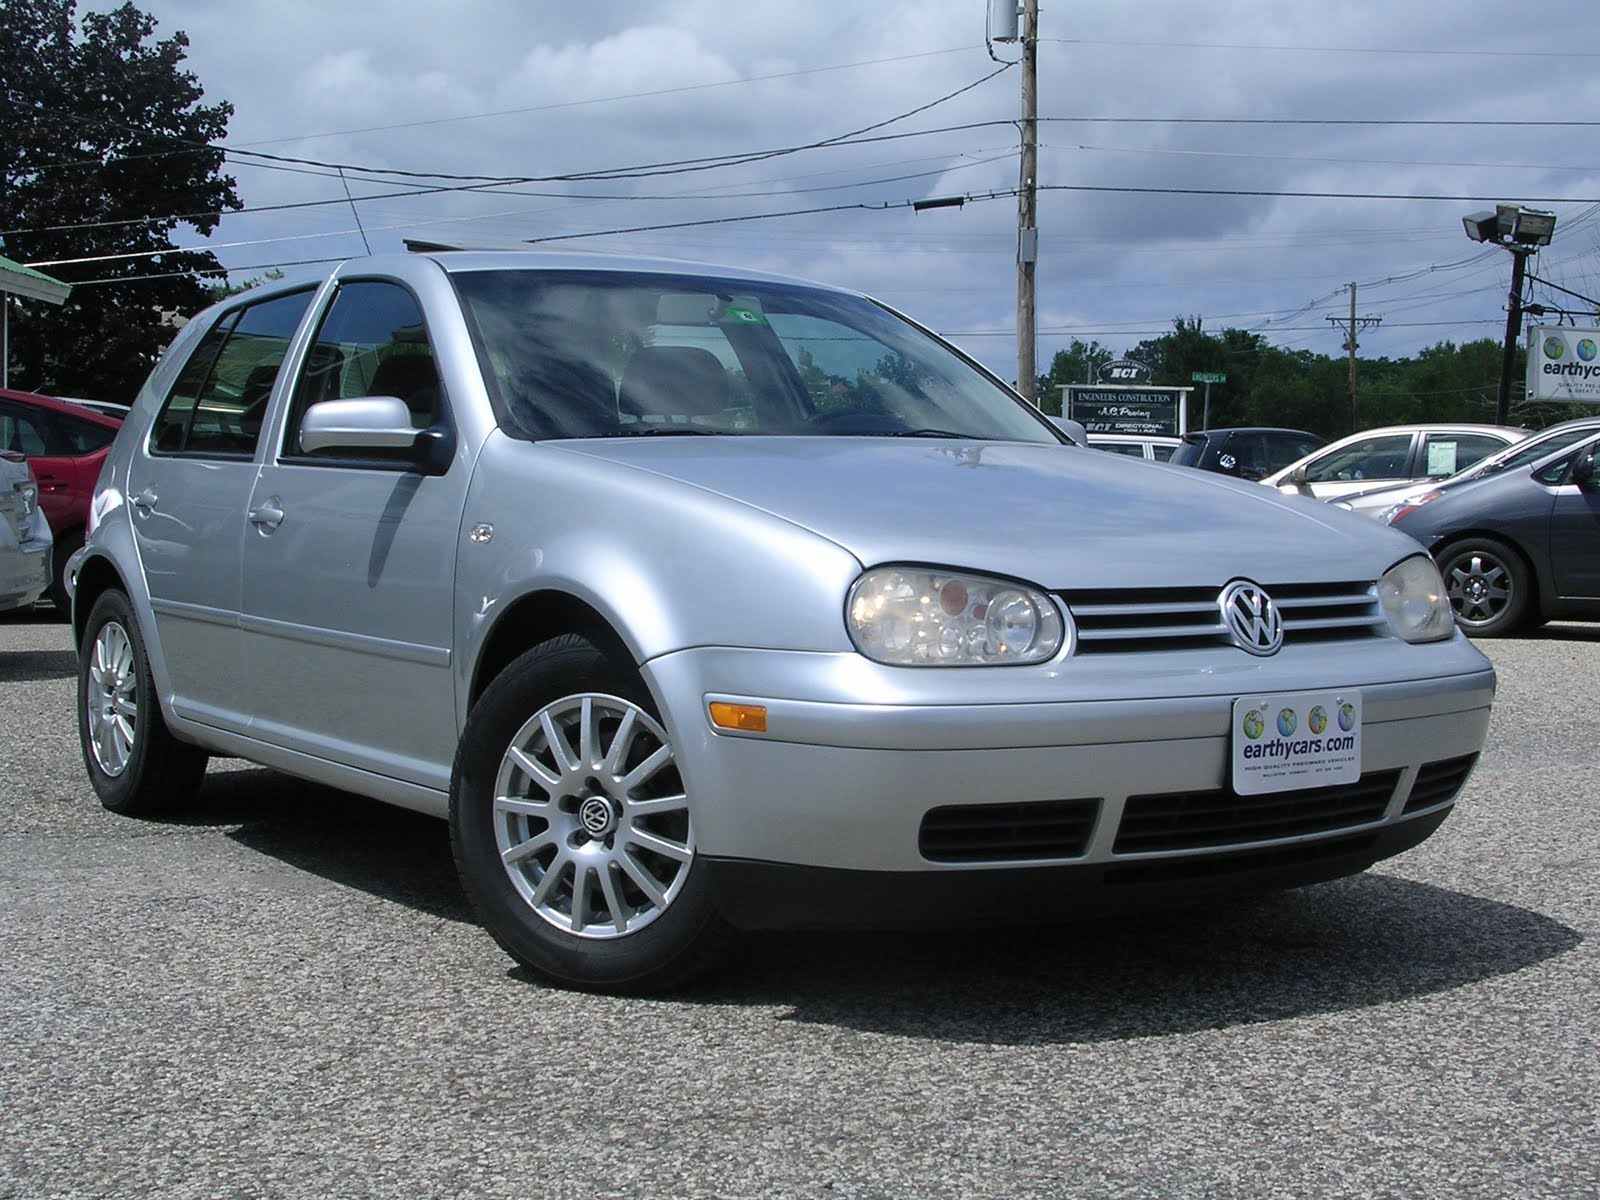 EARTHY CAR OF THE WEEK: 2003 Volkswagen Golf GLS 1.9L TDI